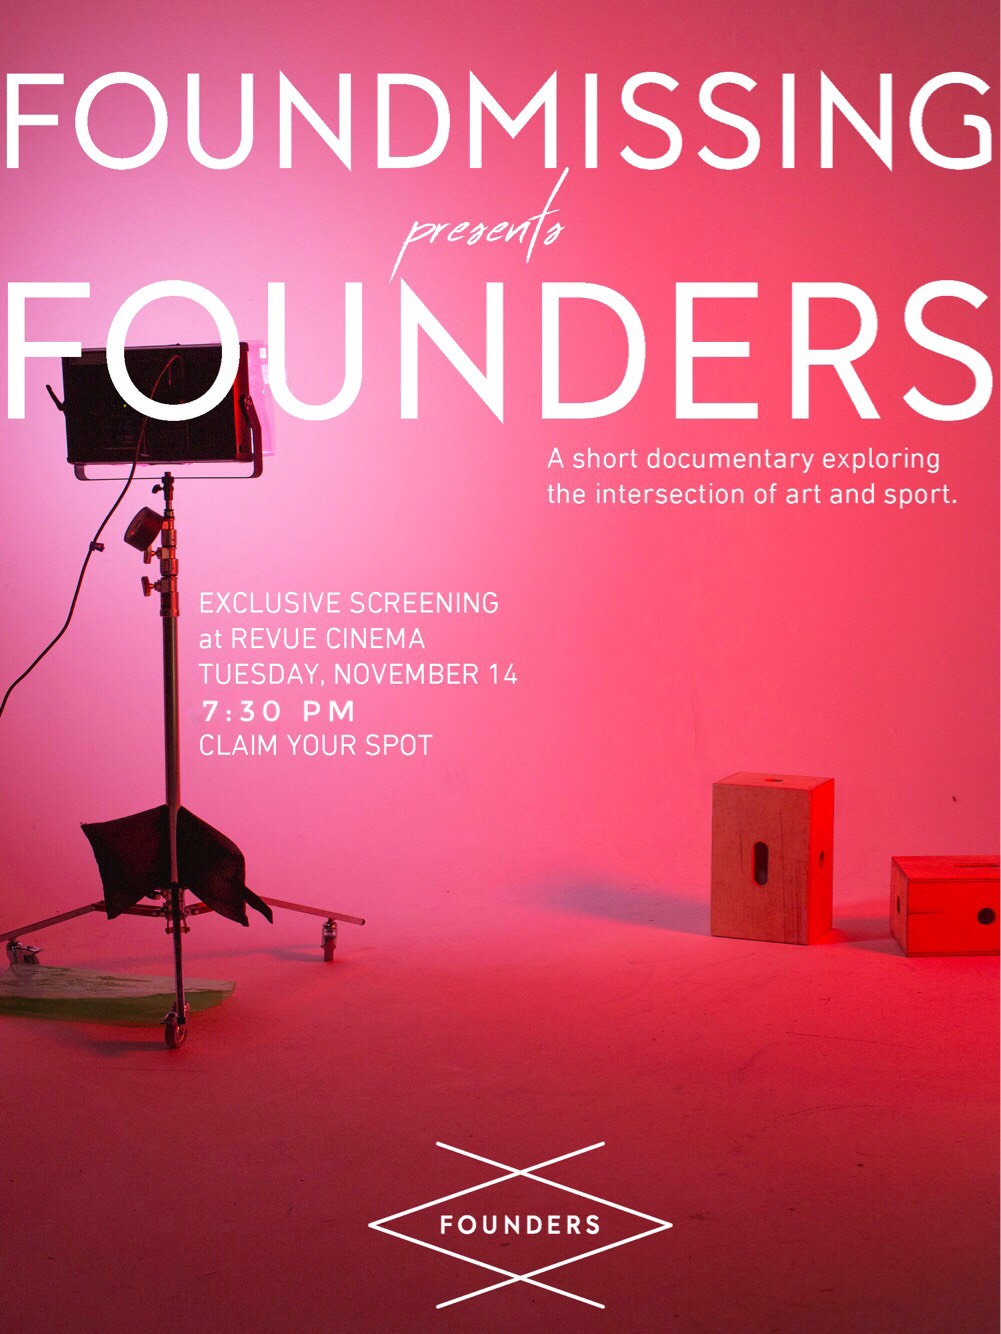 Founders_Documentary_Nike_FoundMissing_The_Revue